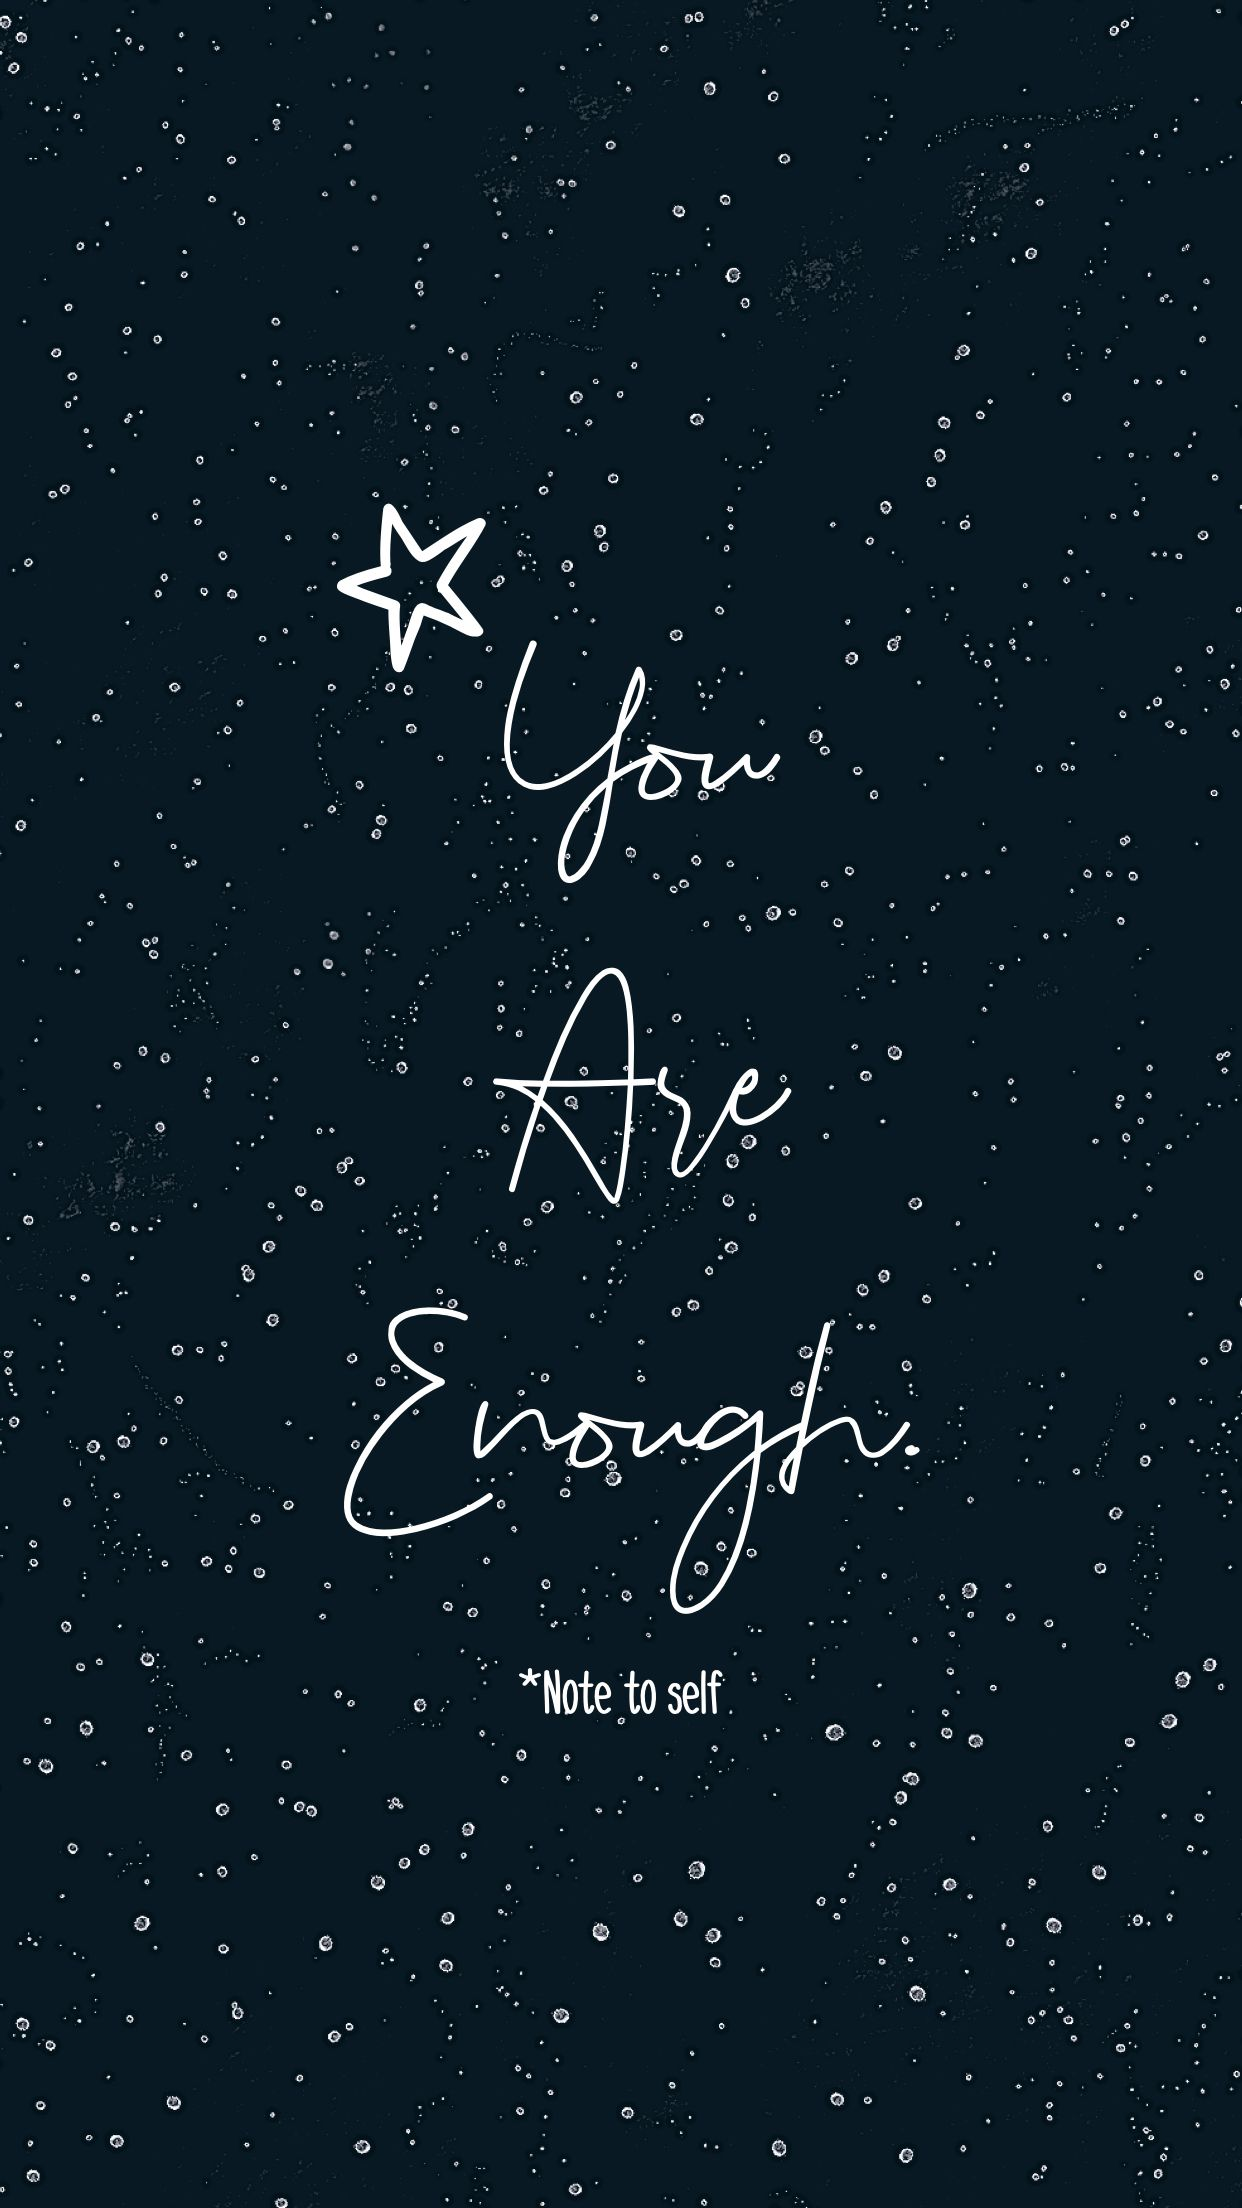 Kait Miller Iphone Wallpaper Quotes Inspirational Wallpaper Iphone Quotes Inspirational Phone Wallpaper